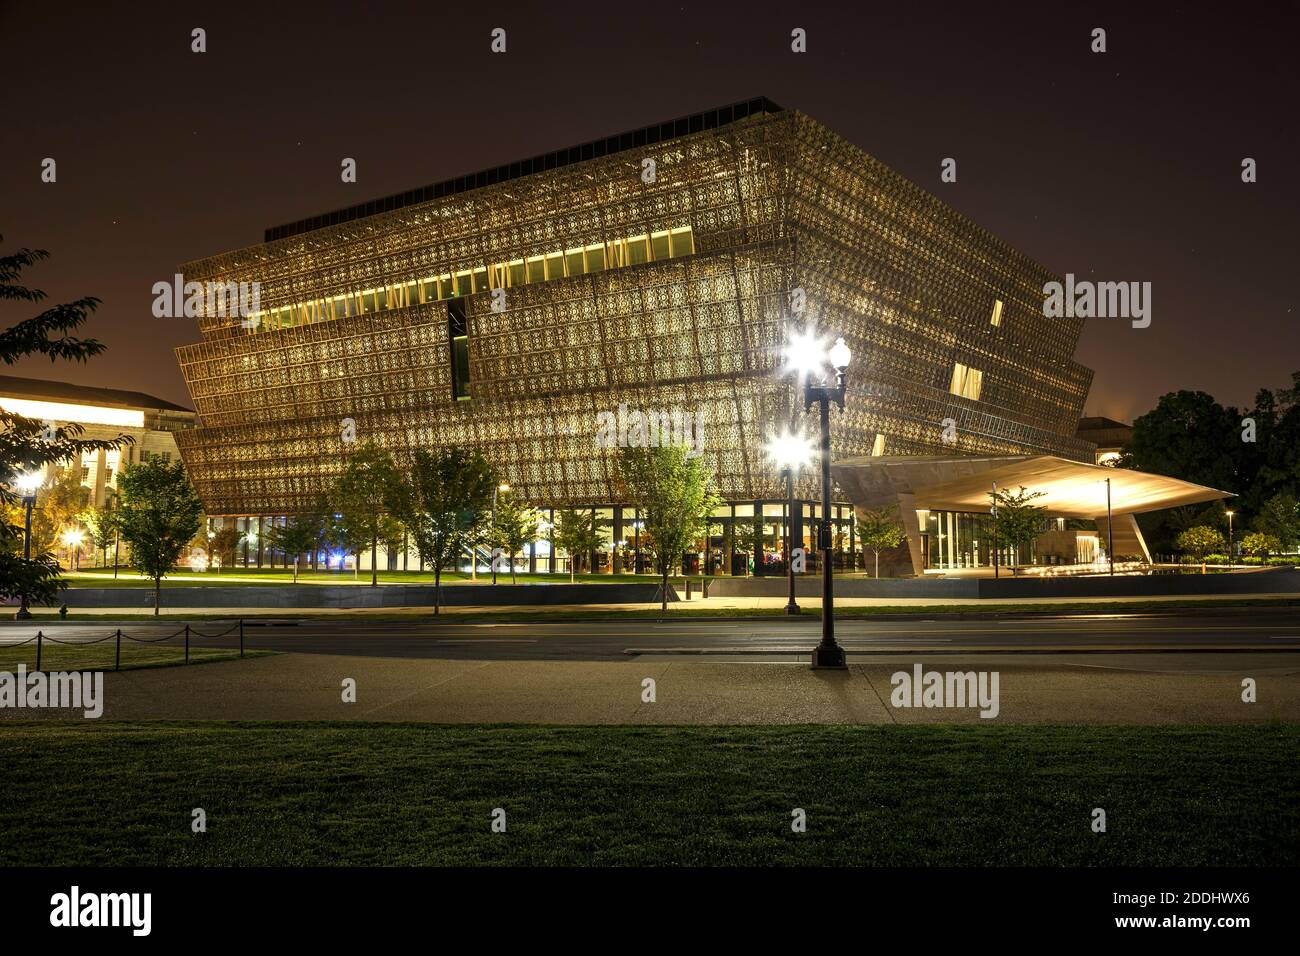 Smithsonian National Museum of African American History and Culture, Washington, District of Columbia USA Stock Photo